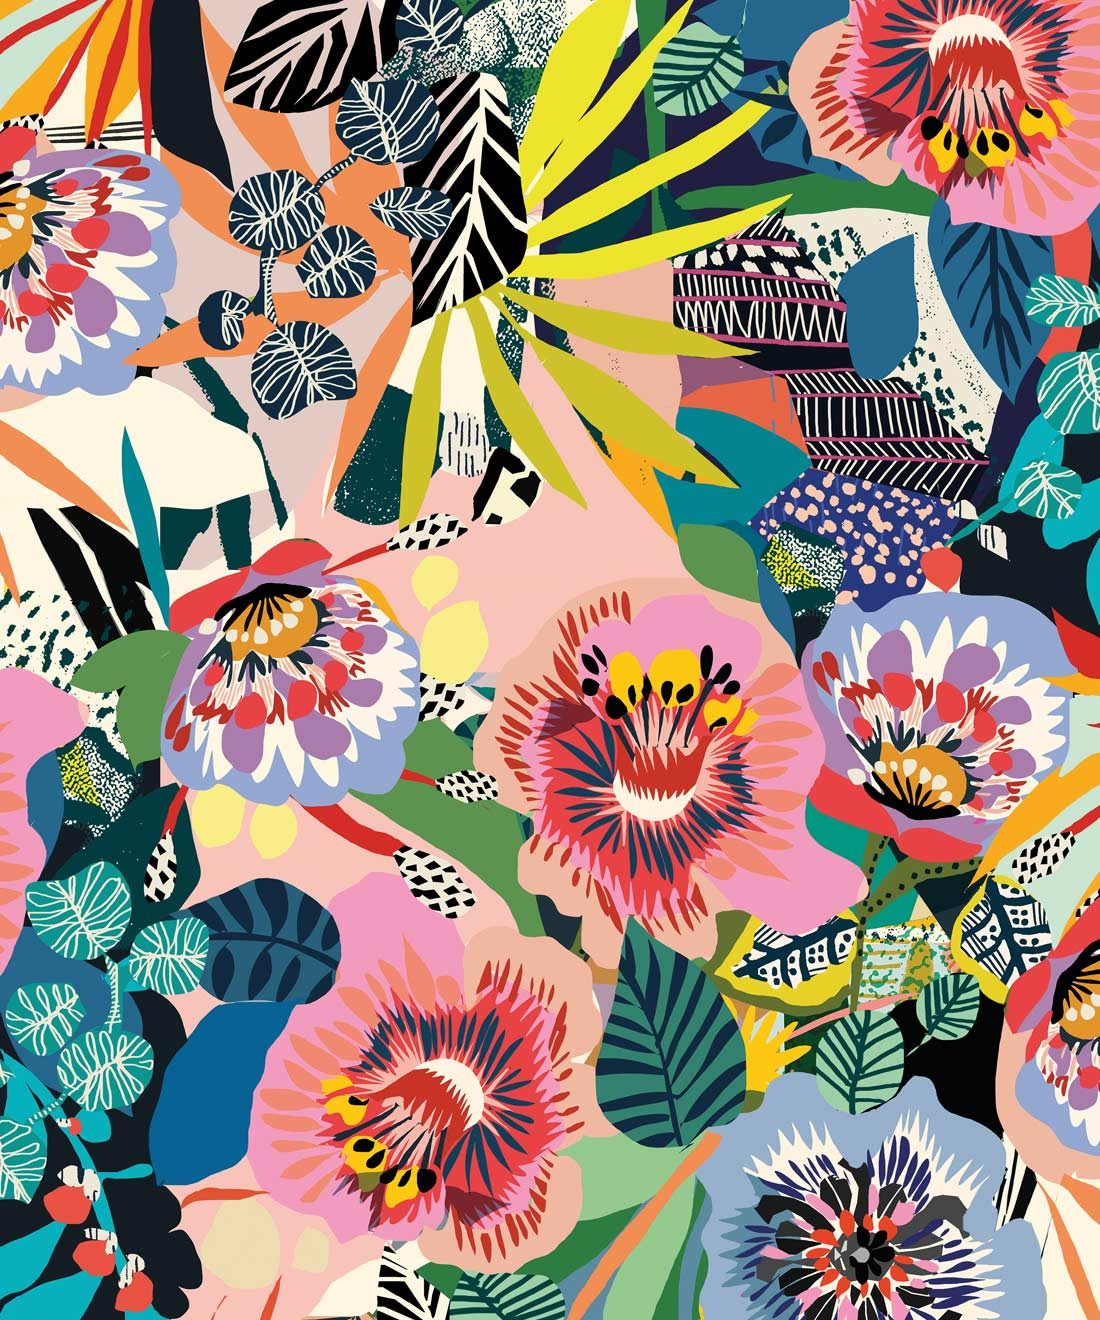 Summer Garden Bold Whimsical Floral Wallpaper Milton King